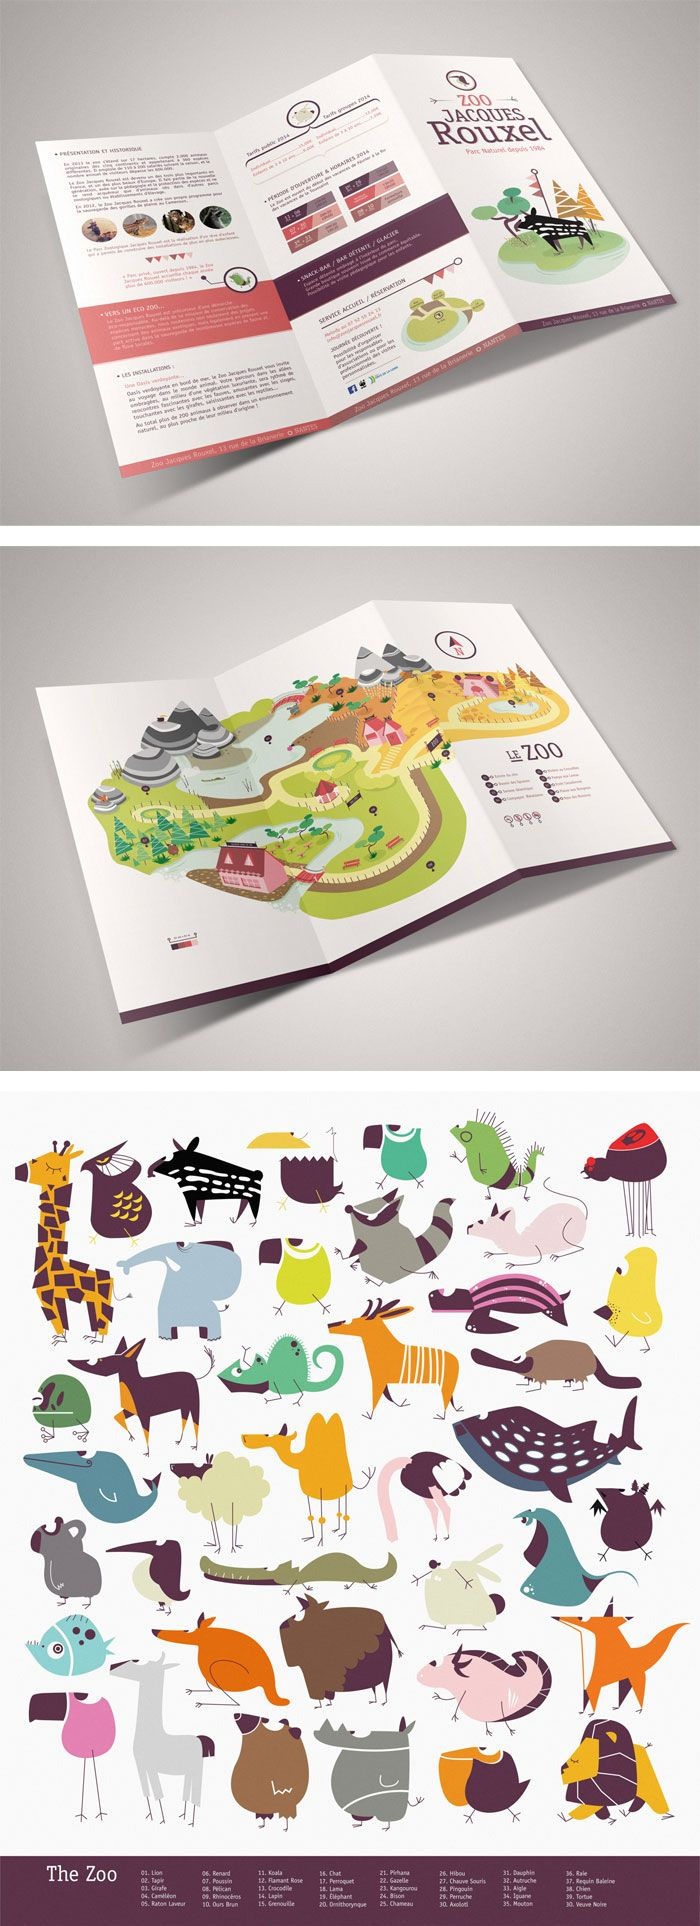 beautiful zoo brochure design | Alliteration Inspiration: Zoos Zzz's